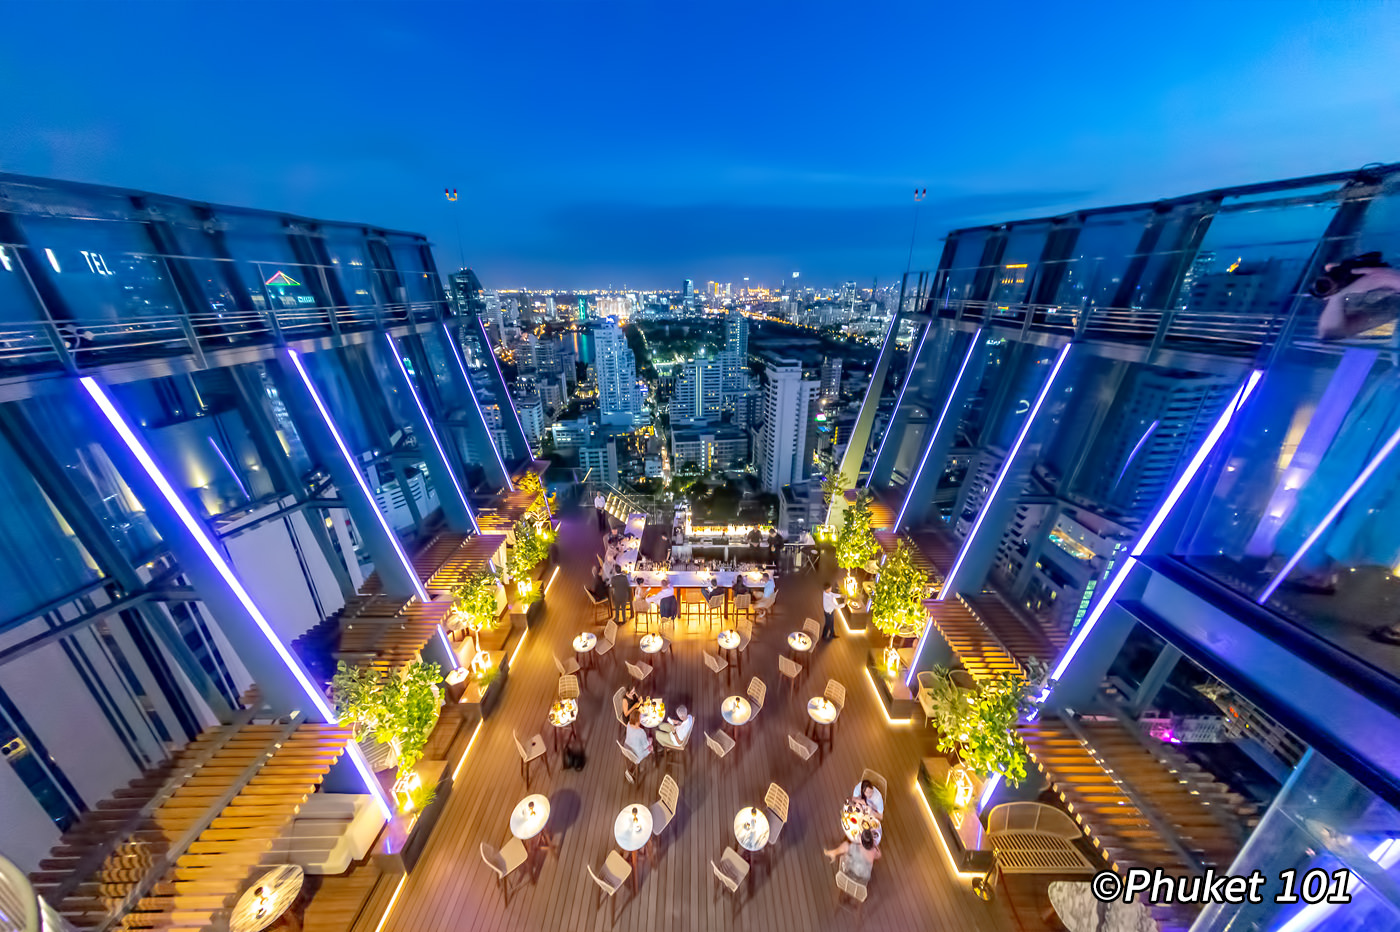 Spectrum Rooftop Bar at Hyatt Regency Bangkok